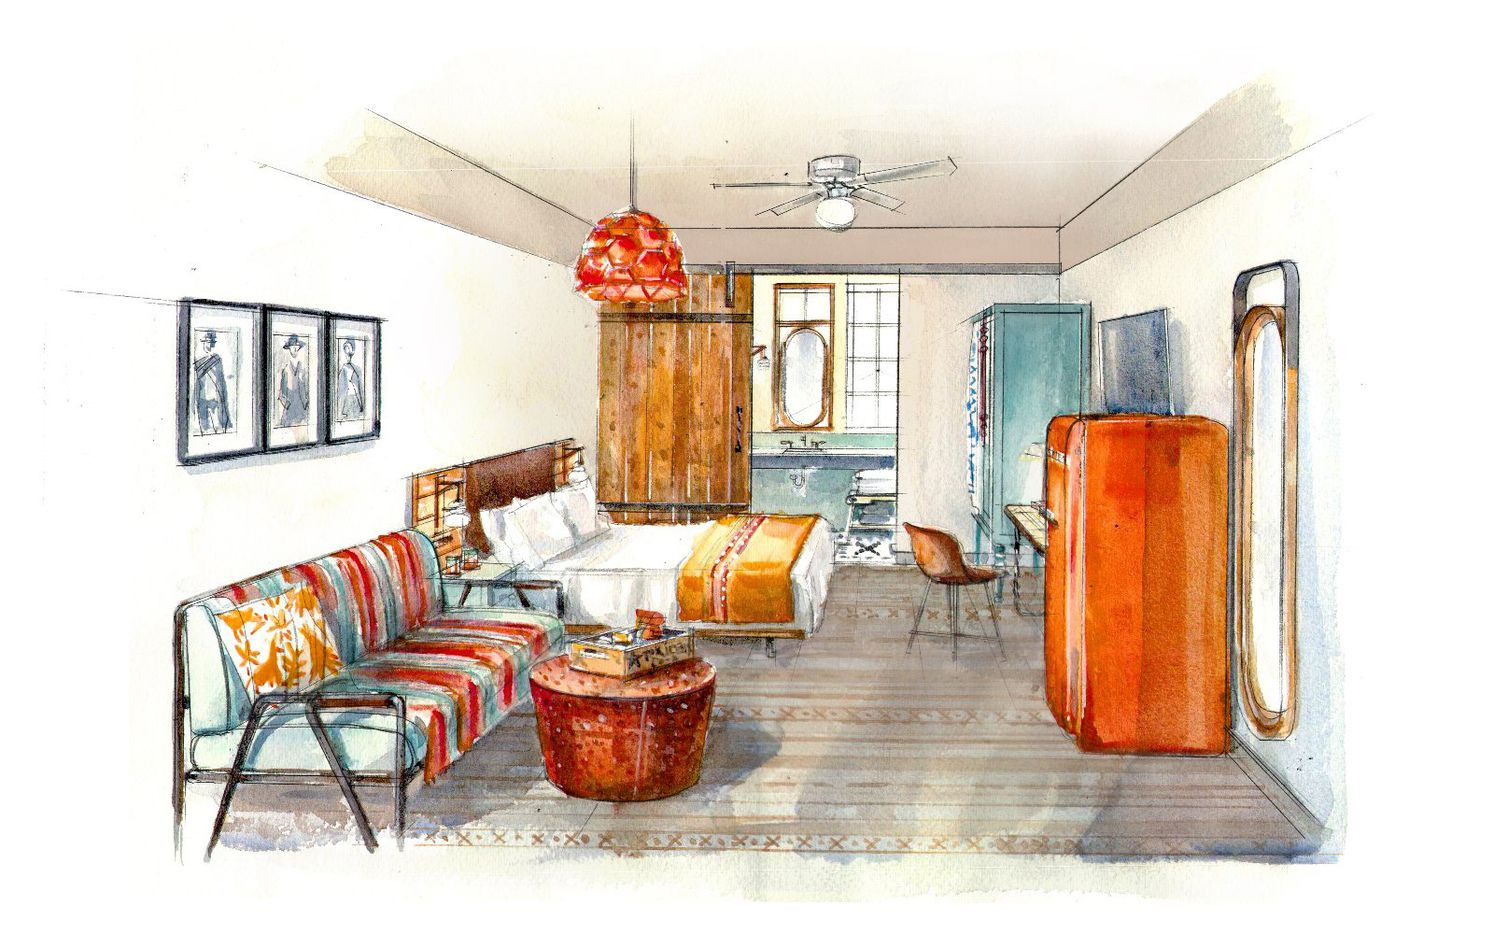 The Texican Court hotel in Irving will have interiors with a Texas and Southwestern style.